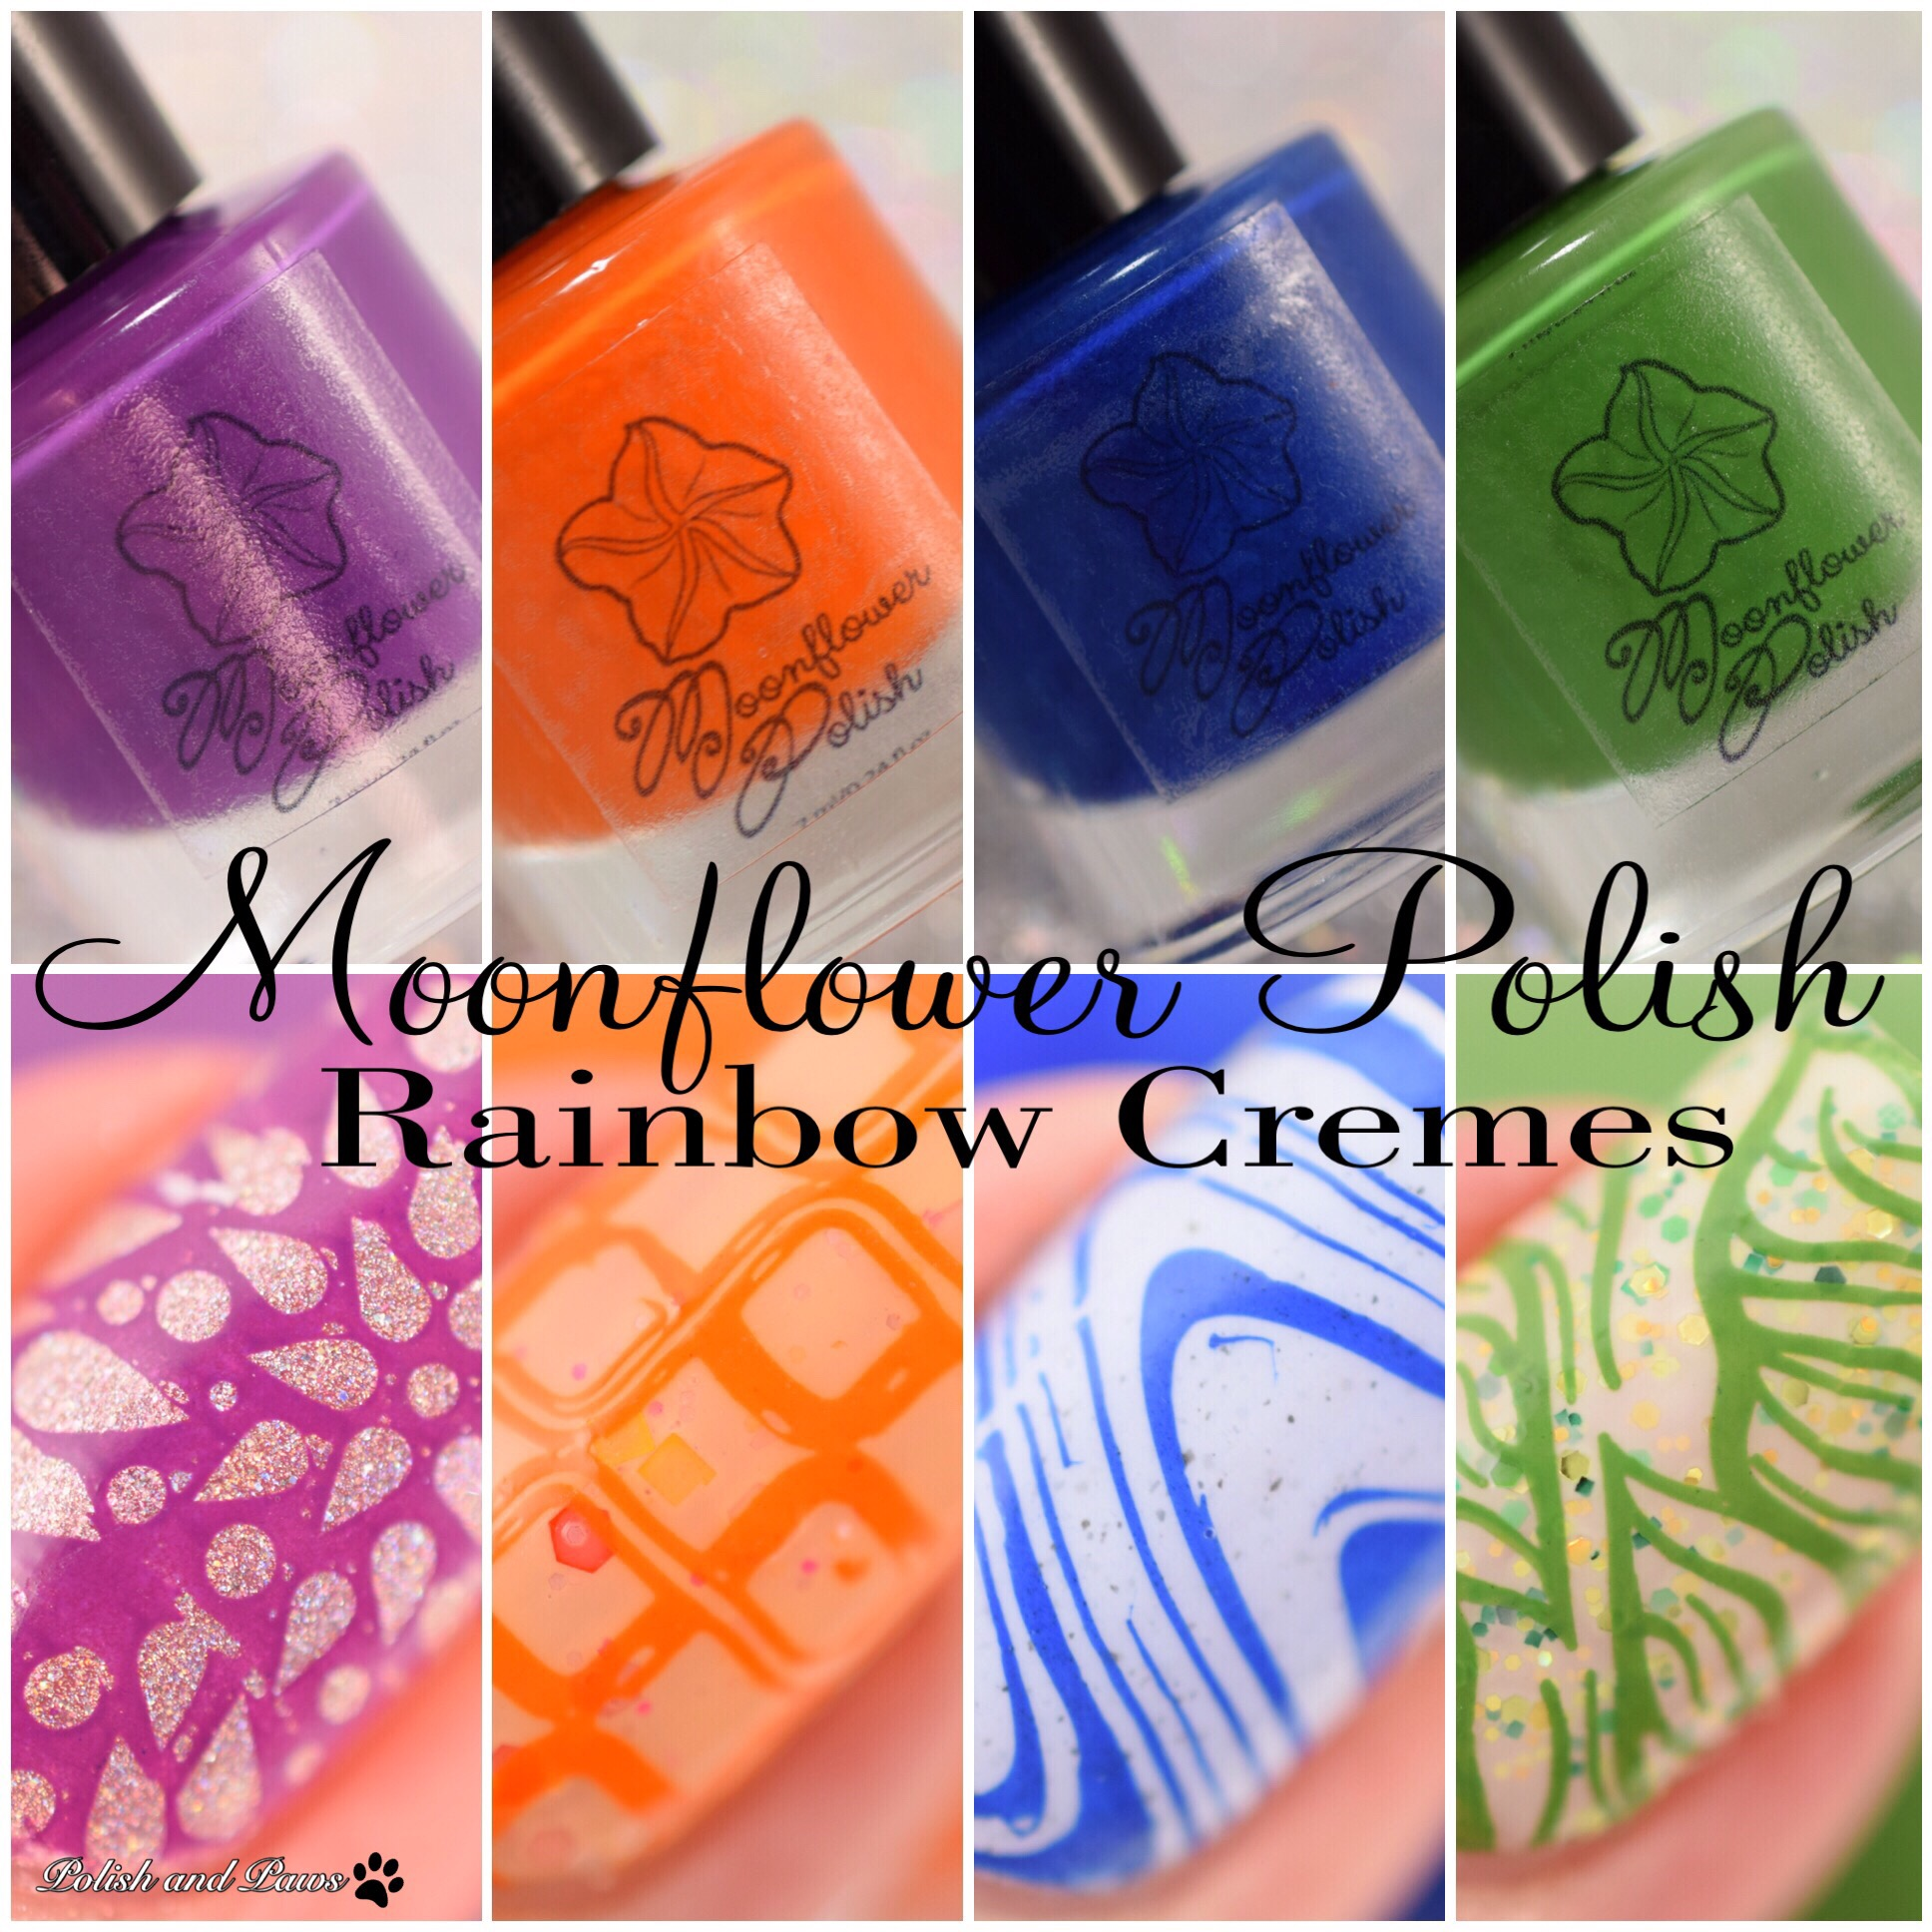 Moonflower Polish Rainbow Cremes